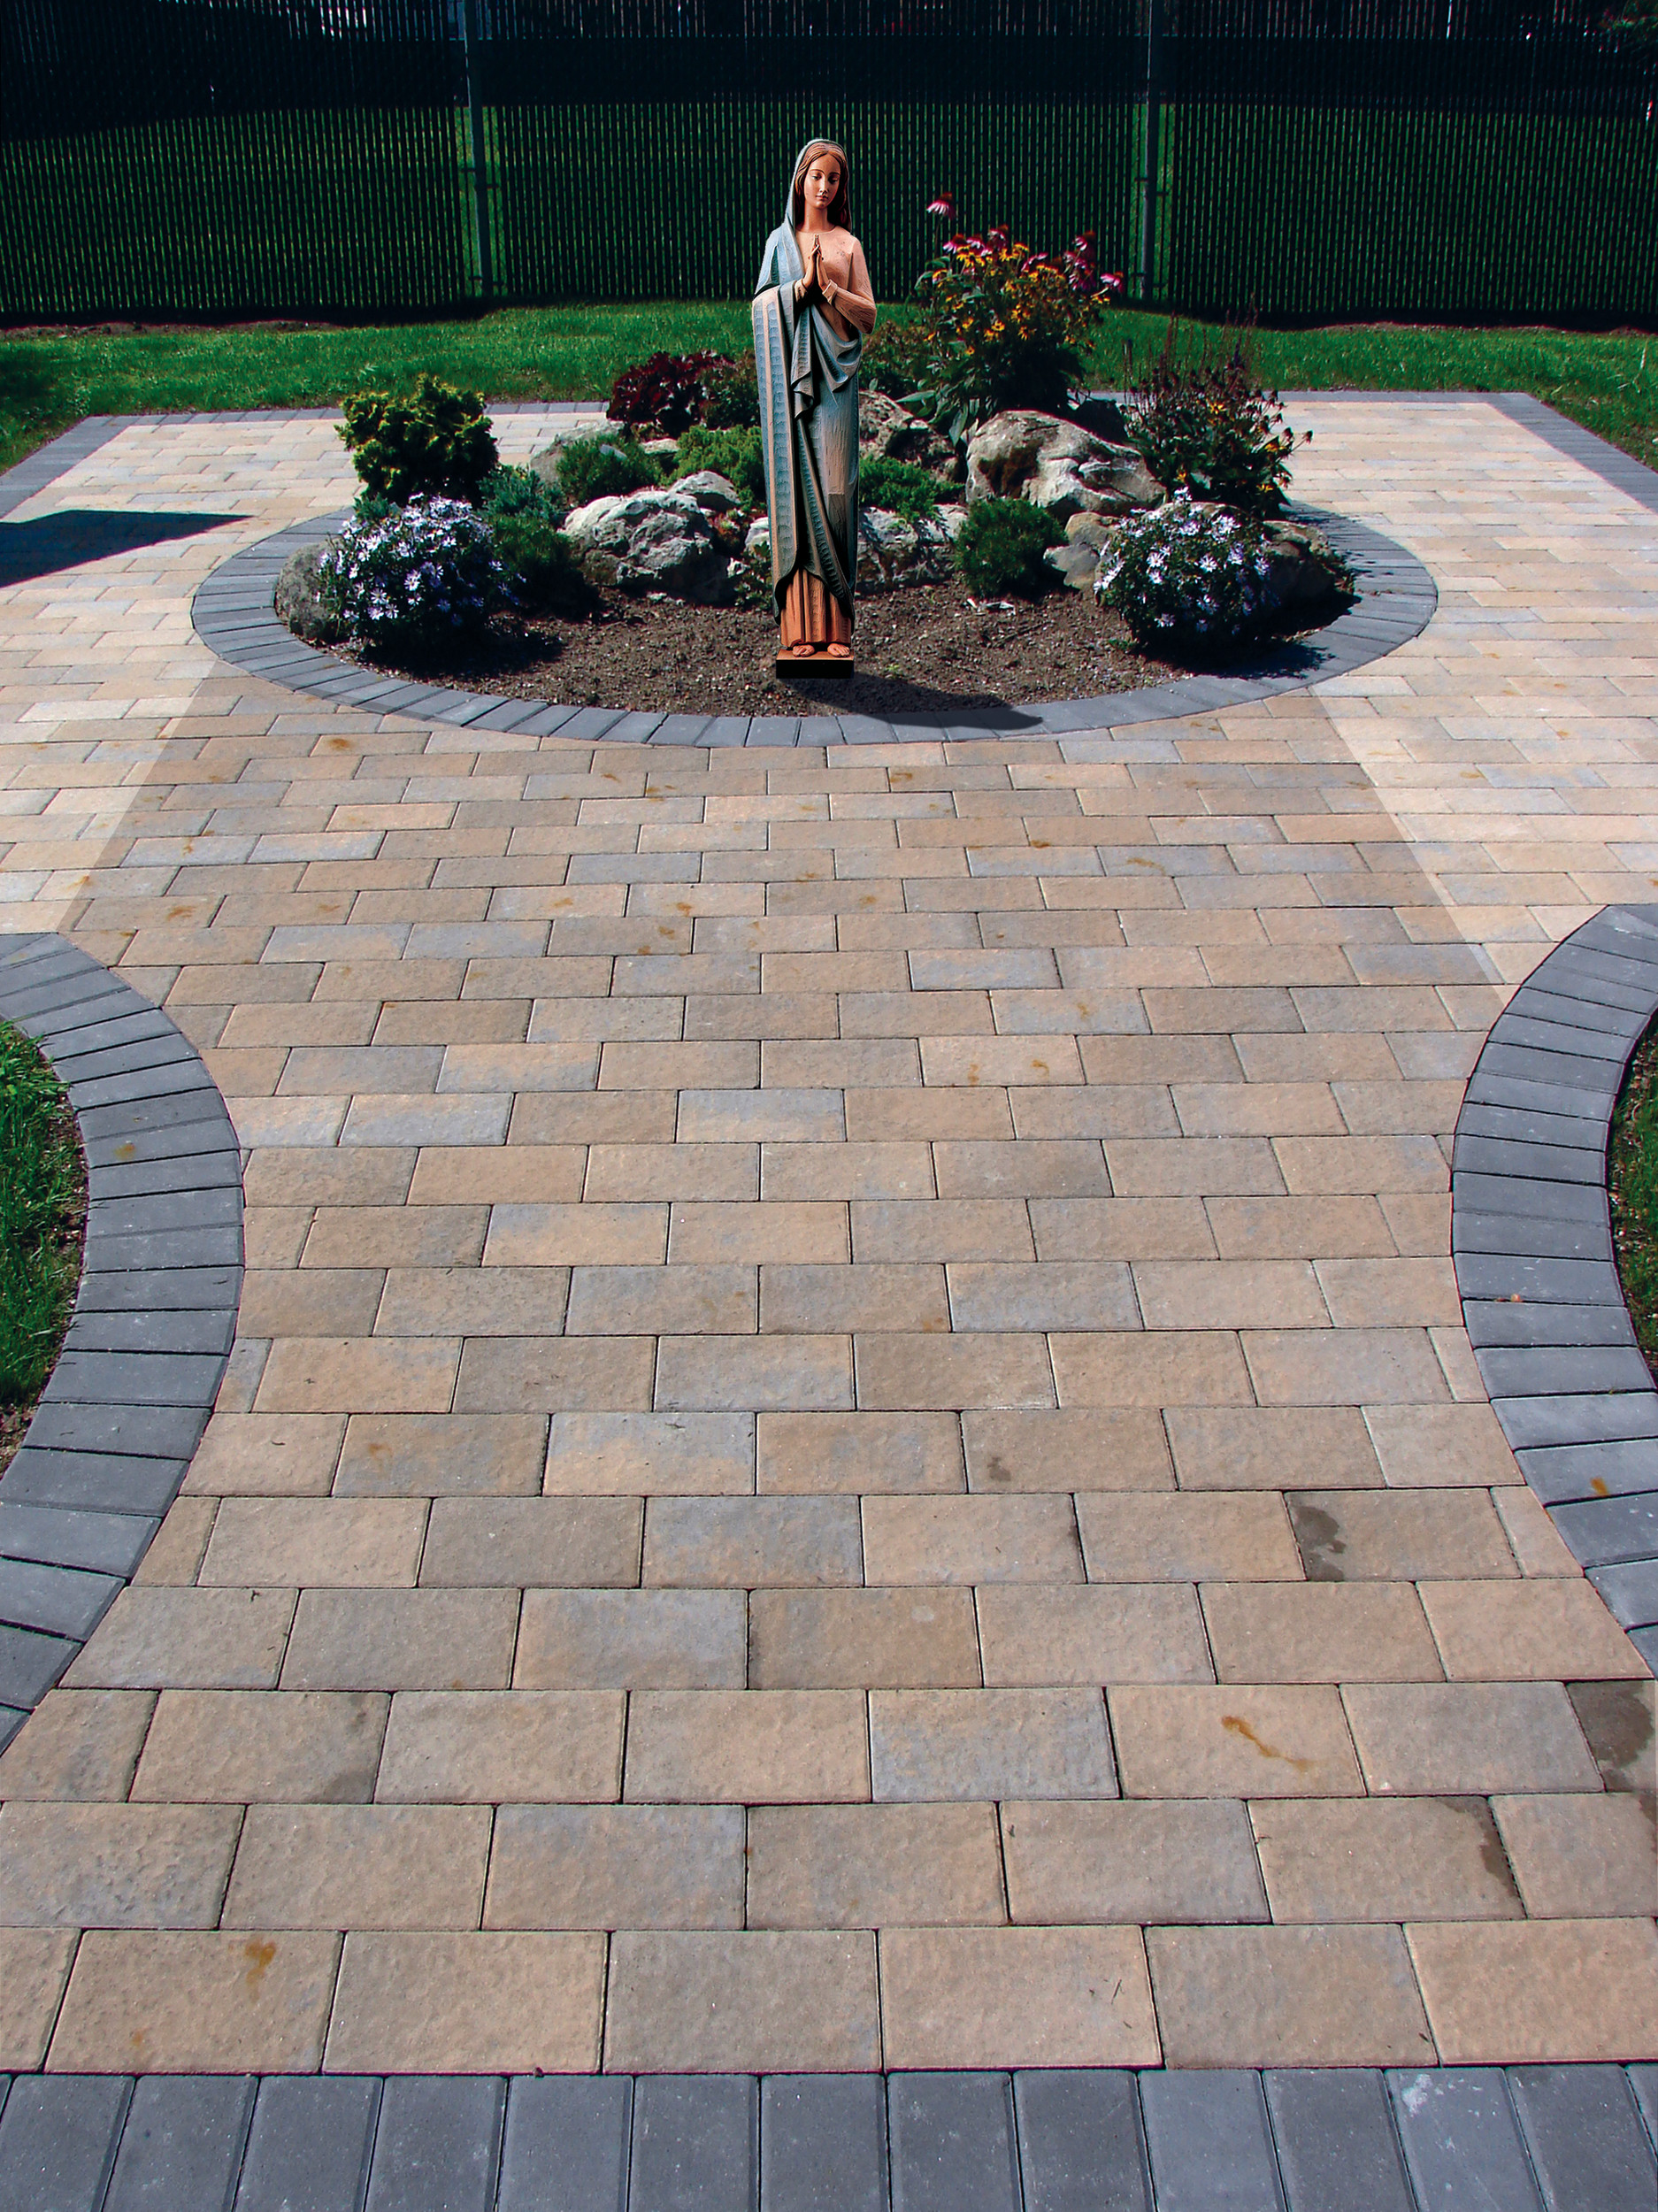 A centennial prayer walkway is being built, and people can purchase bricks and have them inscribed. Above is a rendering of the statue that will adorn its garden.